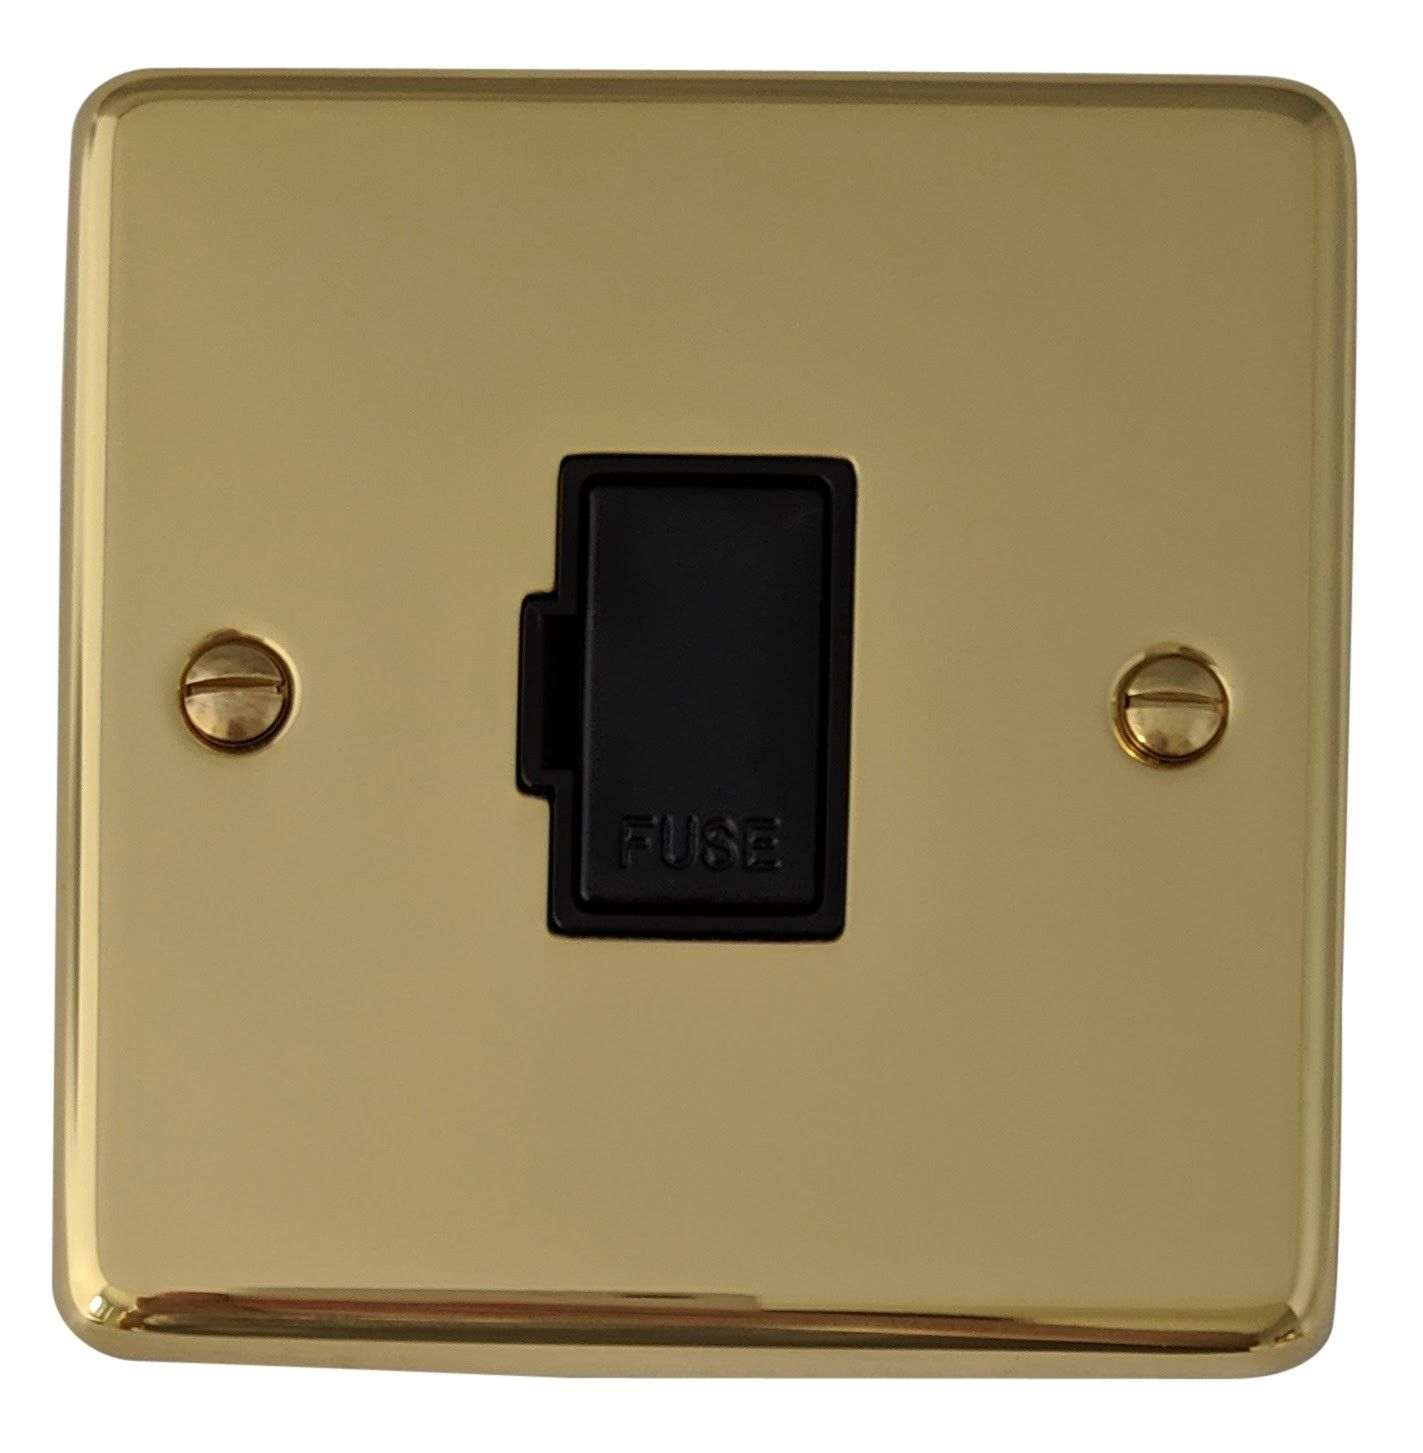 G&H CB90B Standard Plate Polished Brass 1 Gang Fused Spur 13A Unswitched